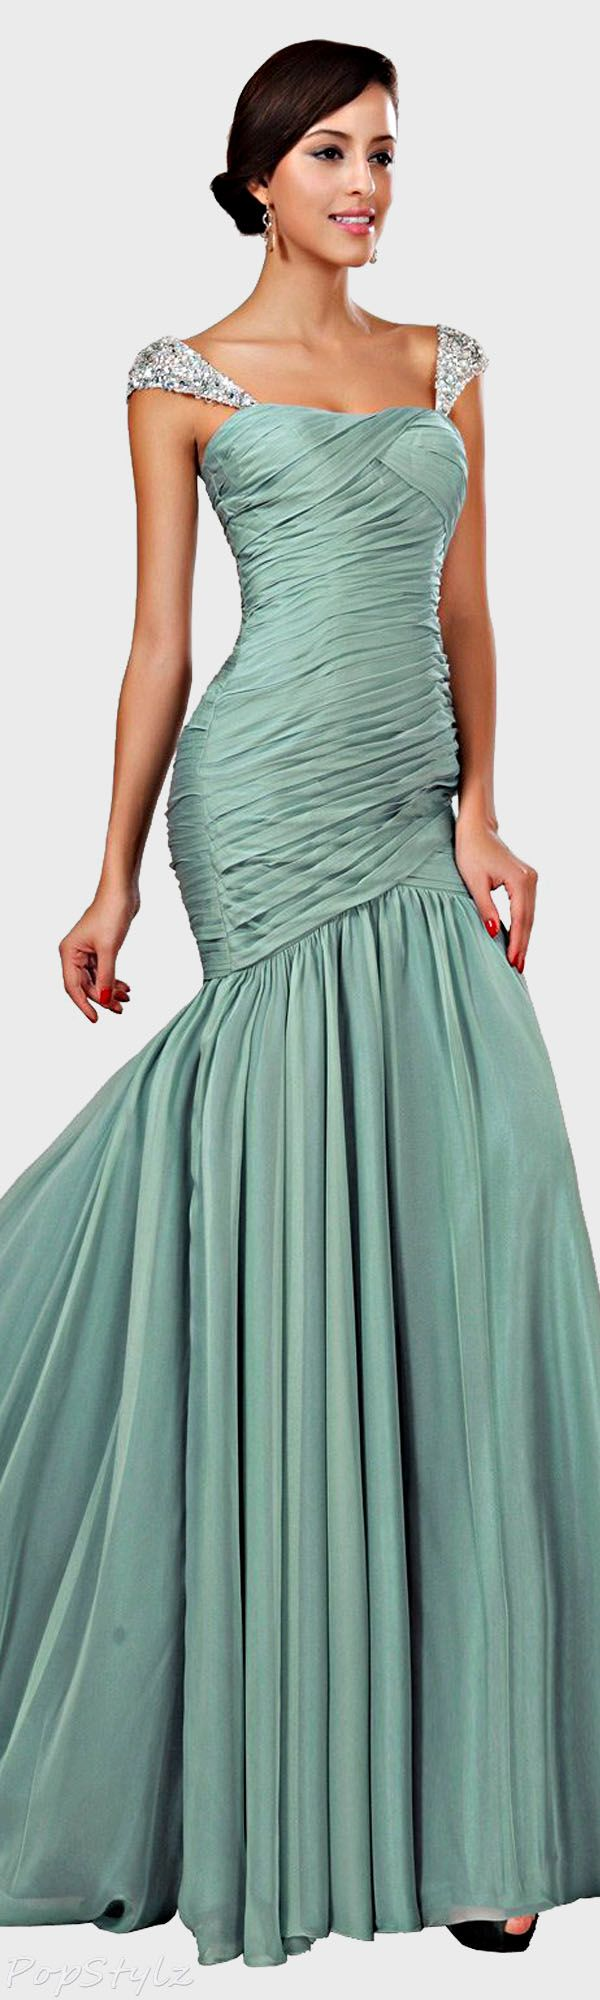 Beaded Cap Sleeve Gown. This is beautiful.